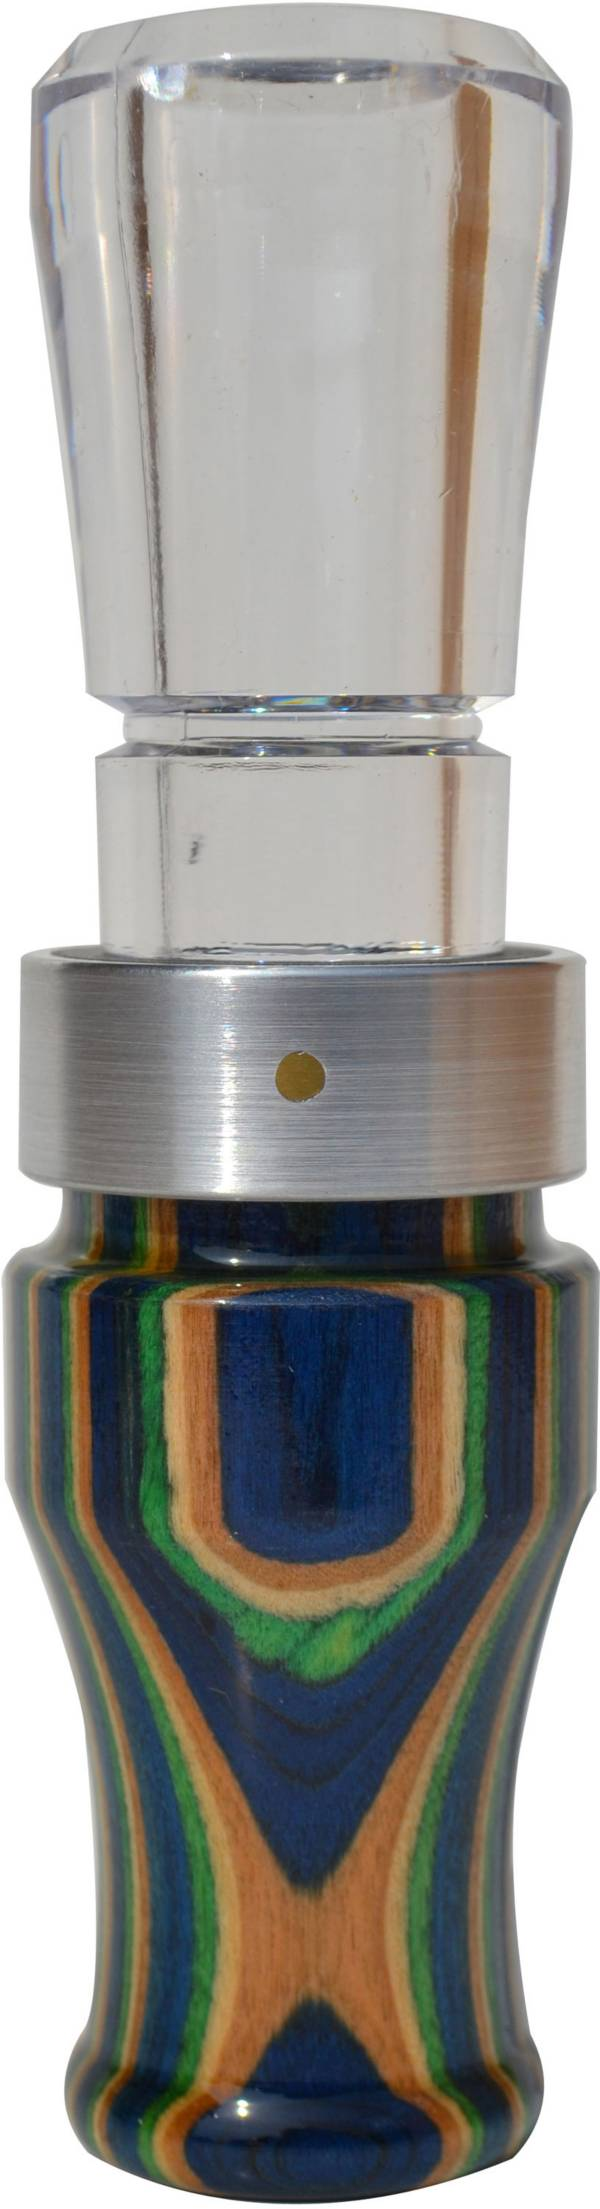 Buck Gardner Grey Ghost Diamond Wood Polycarbonate Goose Call product image